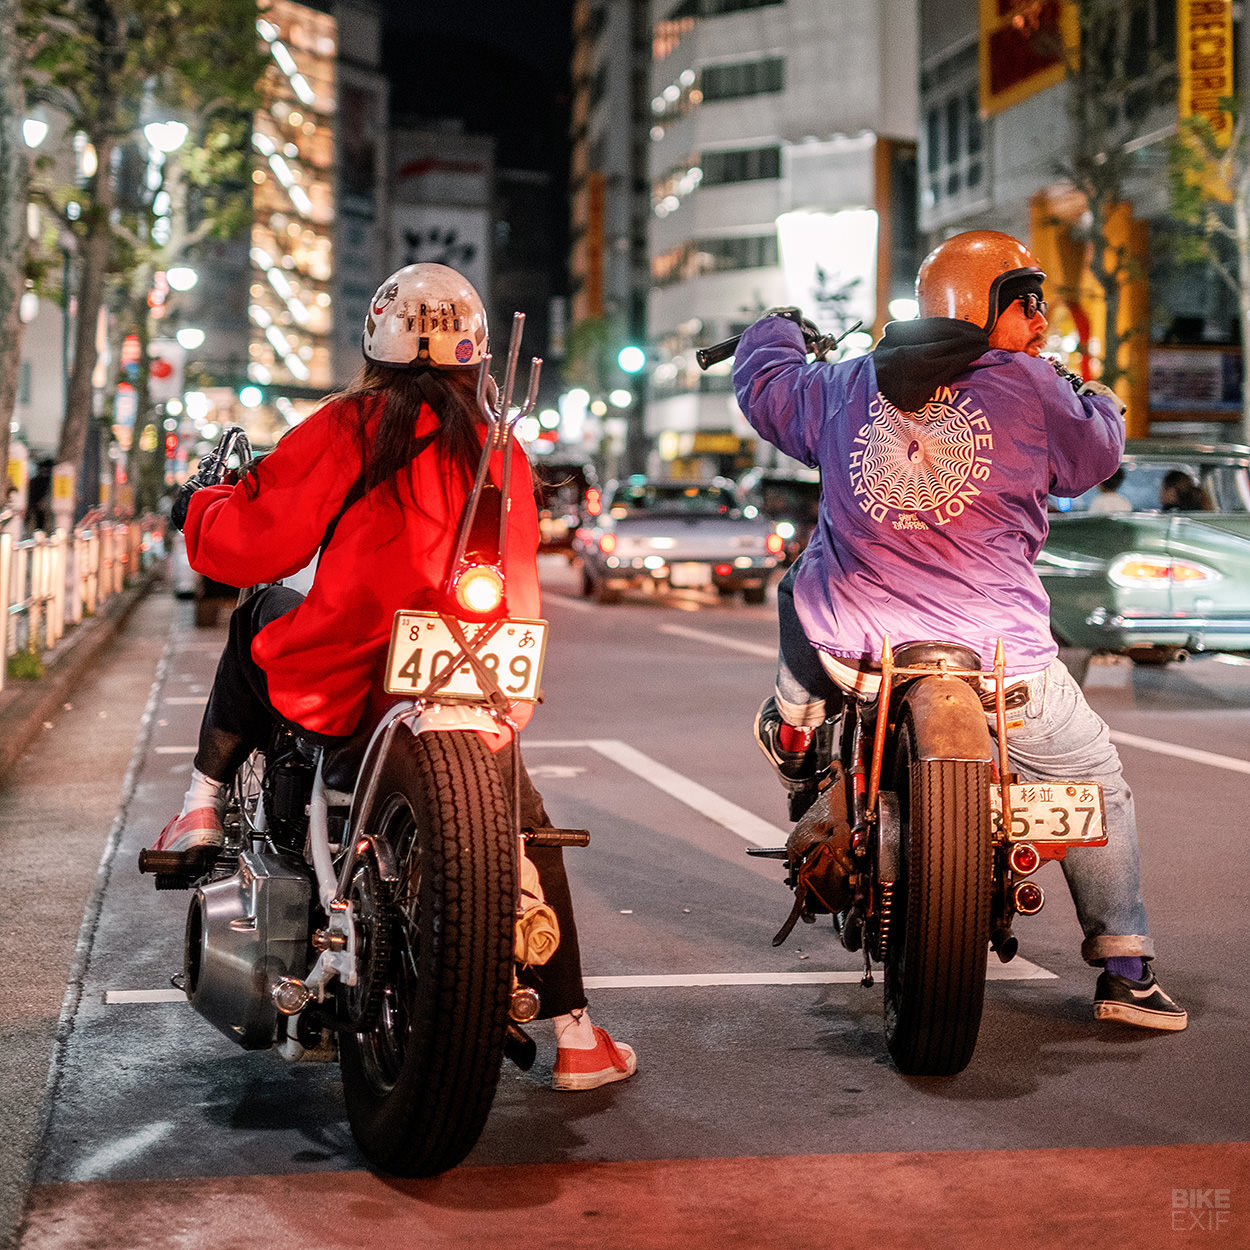 Japanese custom motorcycles and bobbers